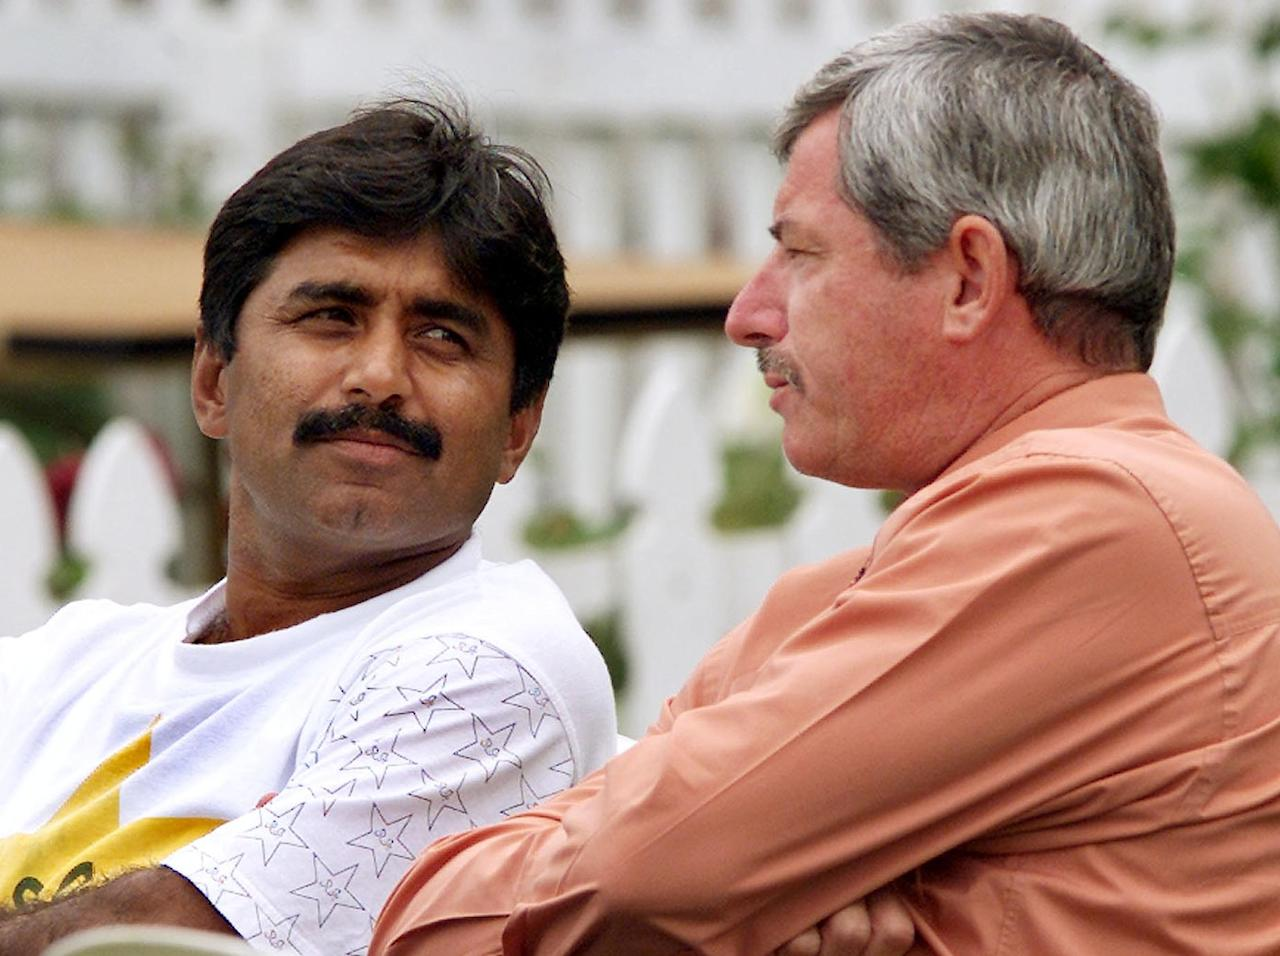 HAMILTON, NEW ZEALAND:  Two legends of the cricketing world, Pakistan coach Javed Miandad (L) and New Zealand selector Sir Richard Hadlee (R) chat on the first day of the third Test Match between the two countries being played in Hamilton 27 March 2001.  Pakistan was dismissed for only 104 in their first innings and at stumps New Zealand is in a commanding position at 160-0 with Richardson not out on 64 and Matthew Bell unbeaten on 89.  AFP PHOTO/WILLIAM WEST (Photo credit should read WILLIAM WEST/AFP/Getty Images)